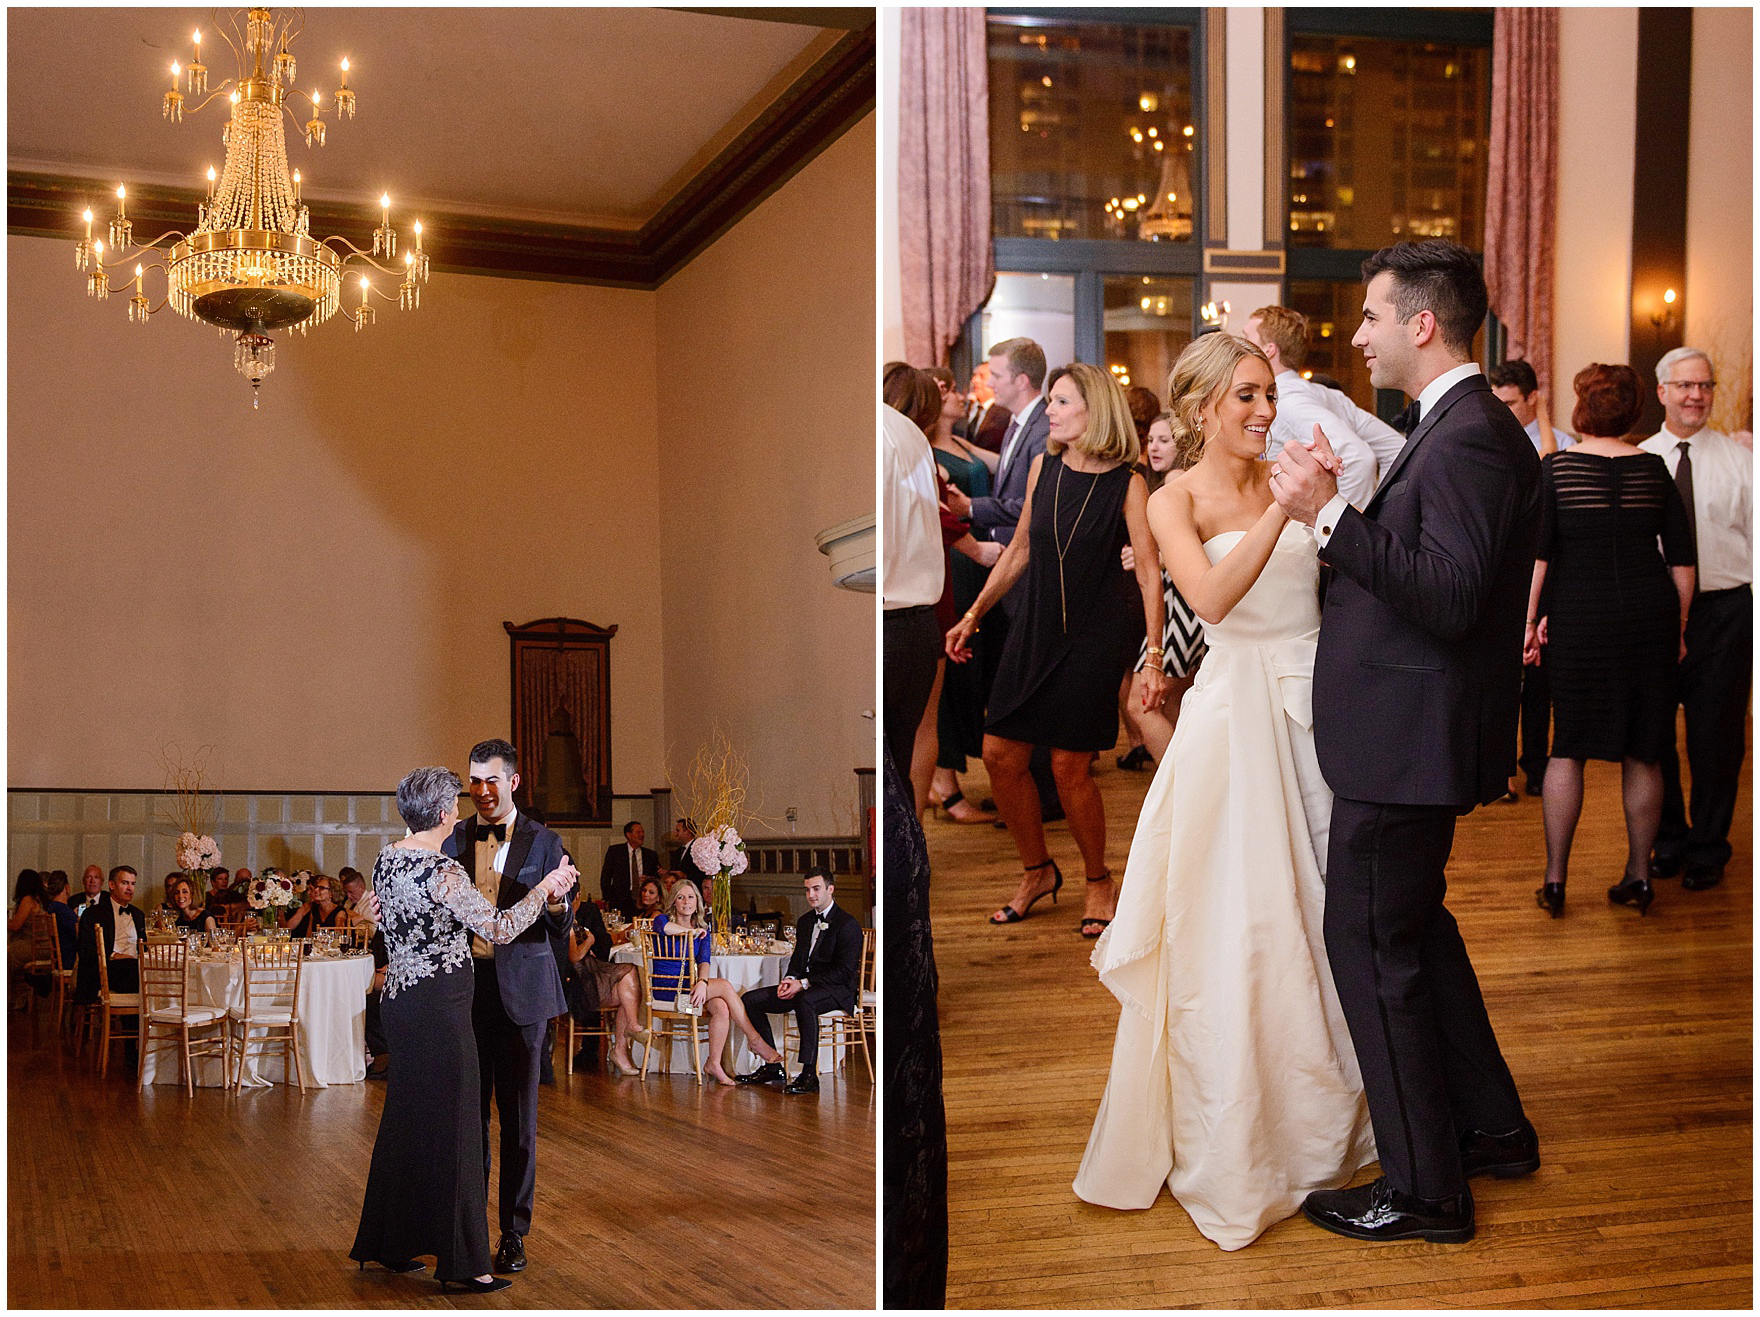 The groom and her mother during a St. Clement Germania Place Chicago wedding.